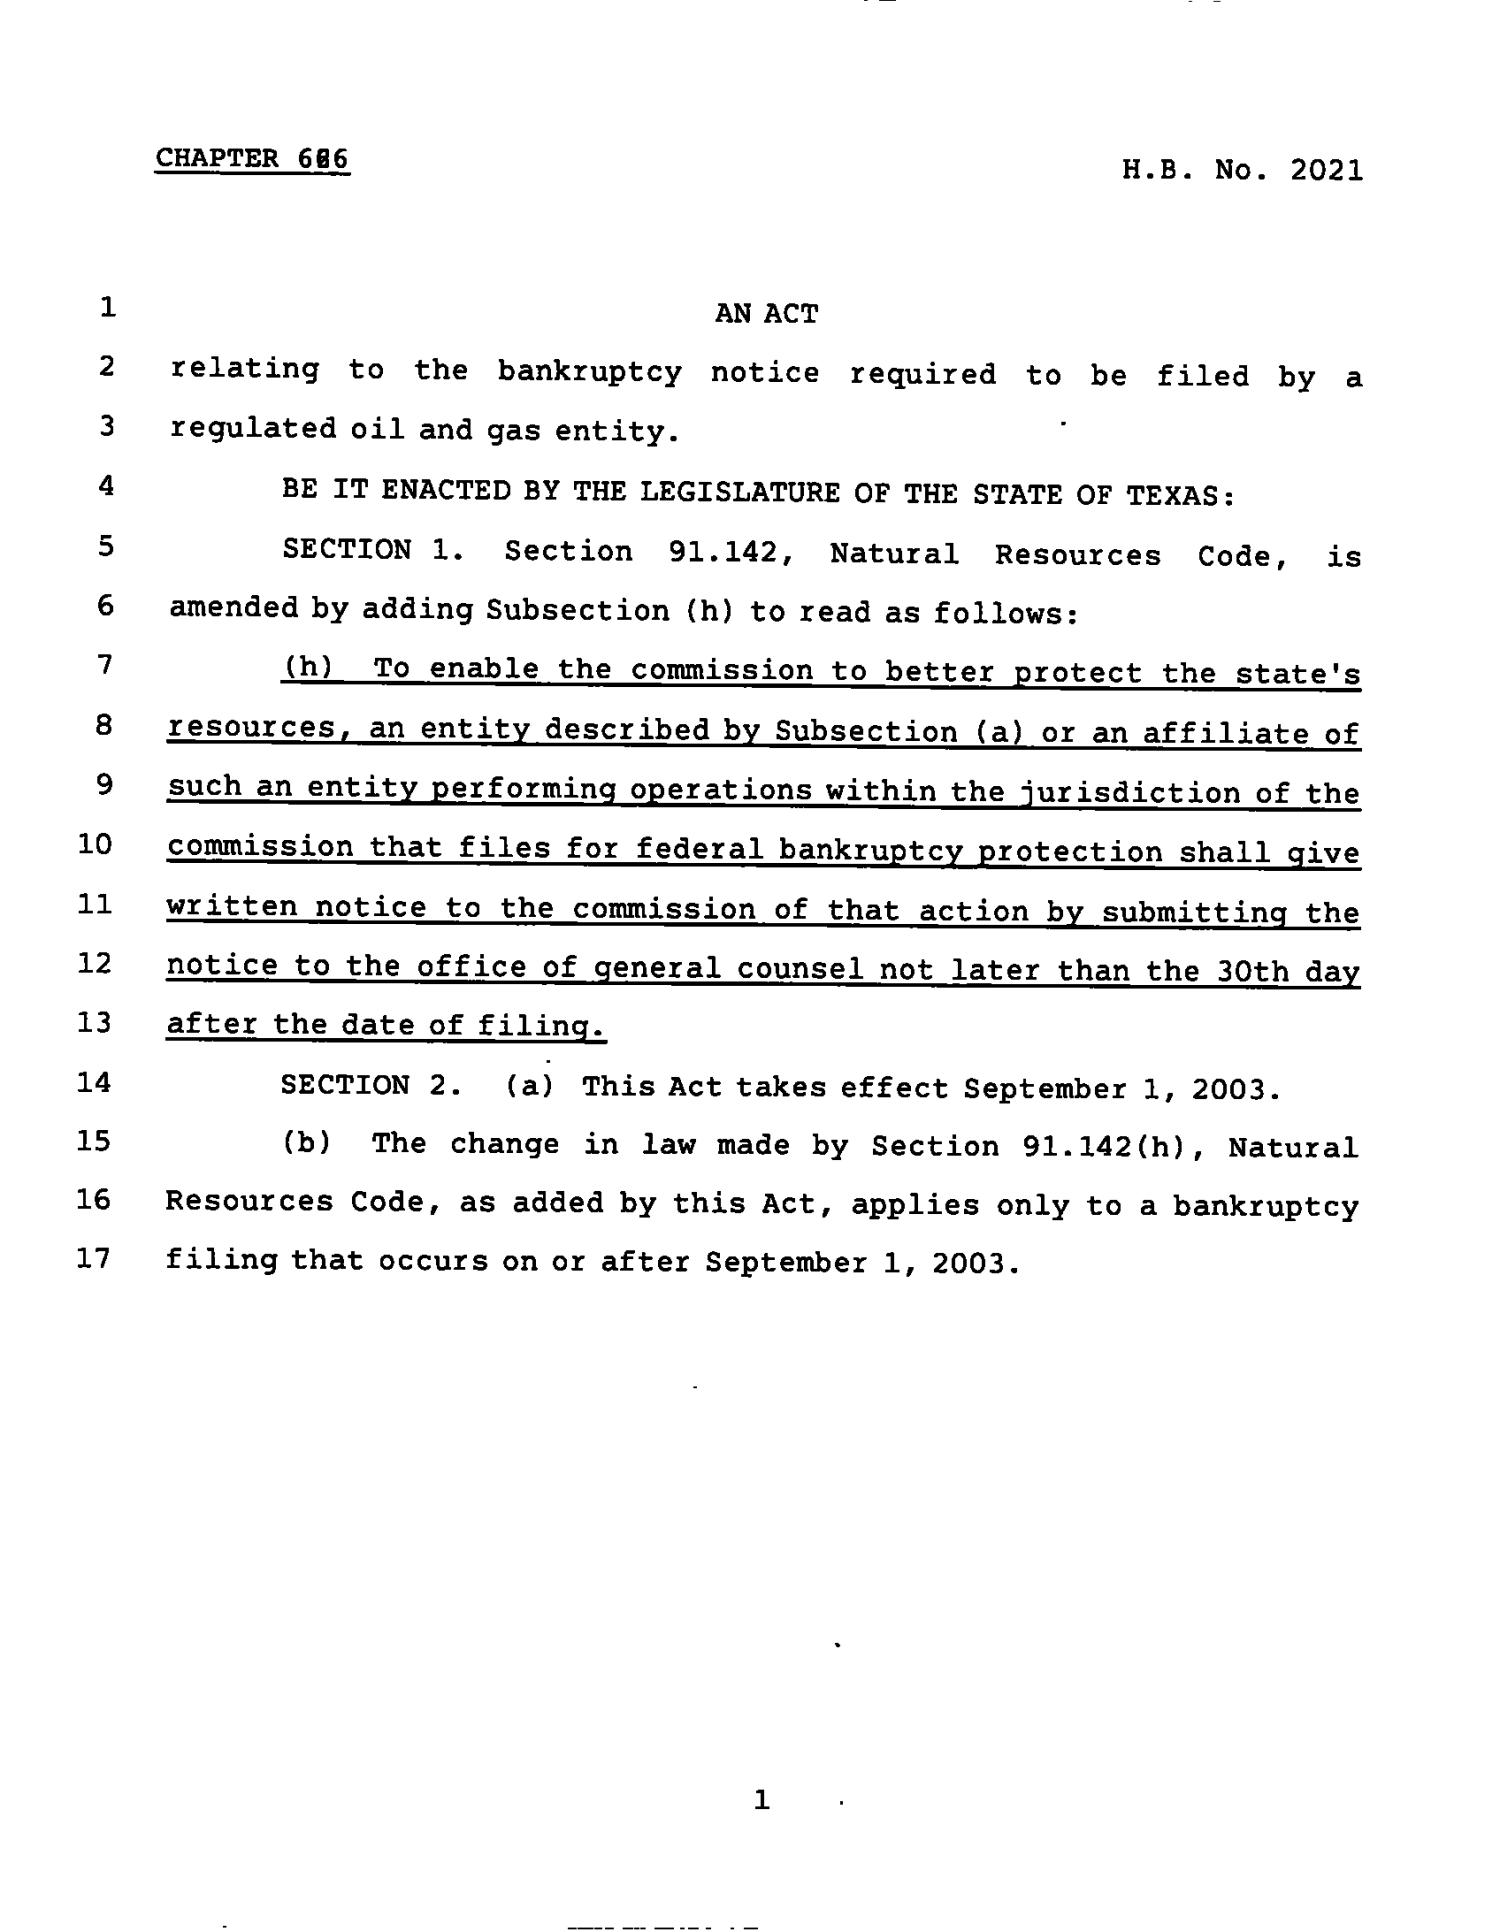 78th Texas Legislature, Regular Session, House Bill 2021, Chapter 626                                                                                                      [Sequence #]: 1 of 2